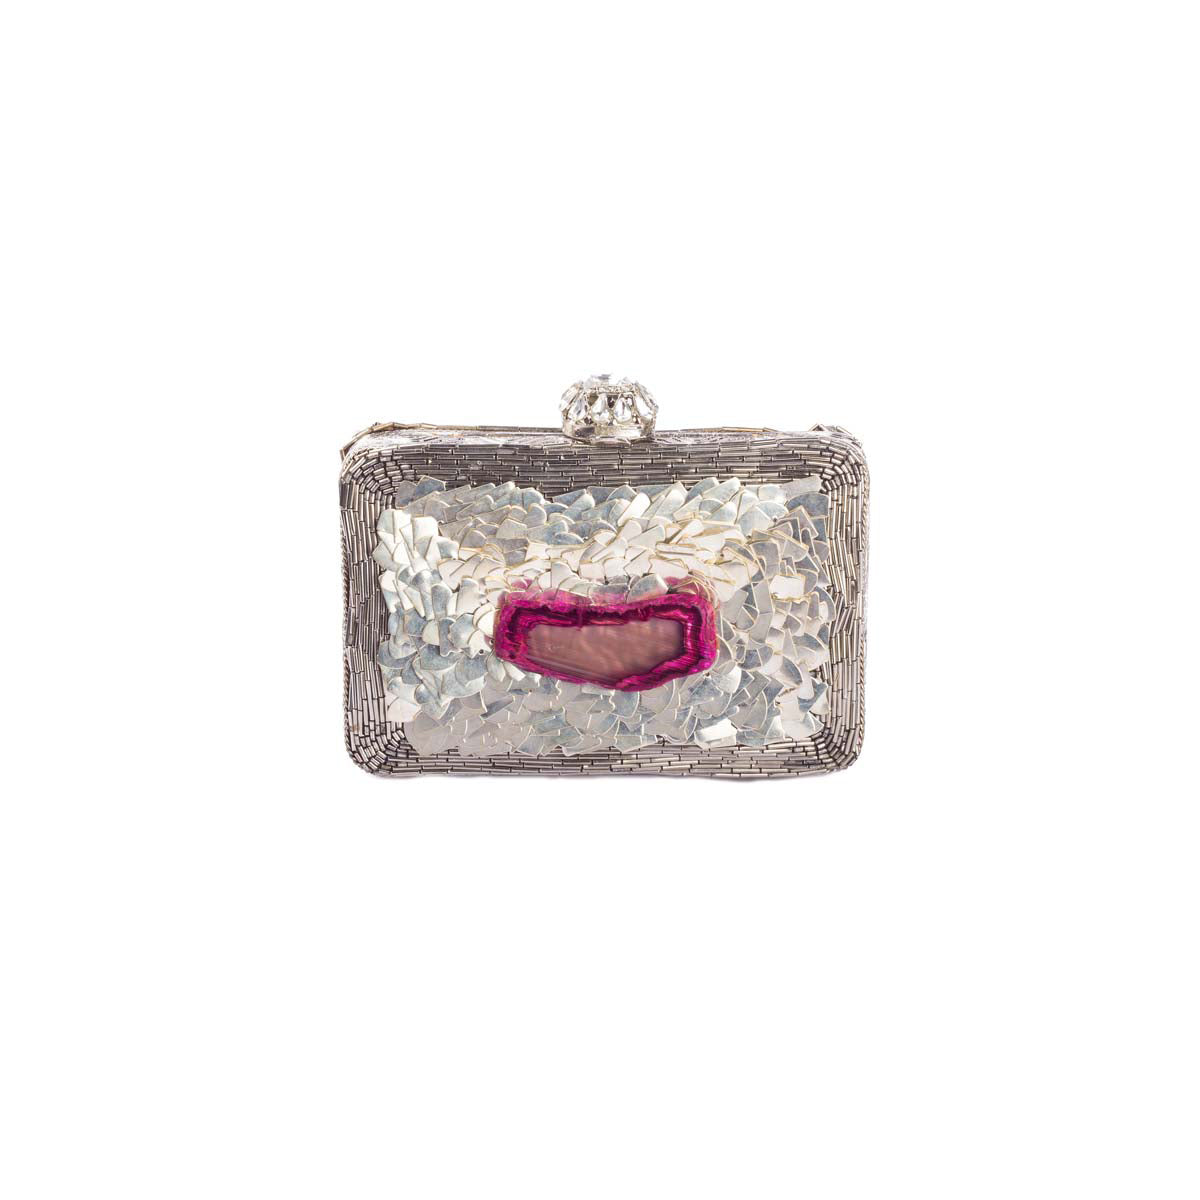 Unleash the bling-obsessed-diva within! Our silver metal clutch perfected with a pink moon rock will have the stars saluting your style!